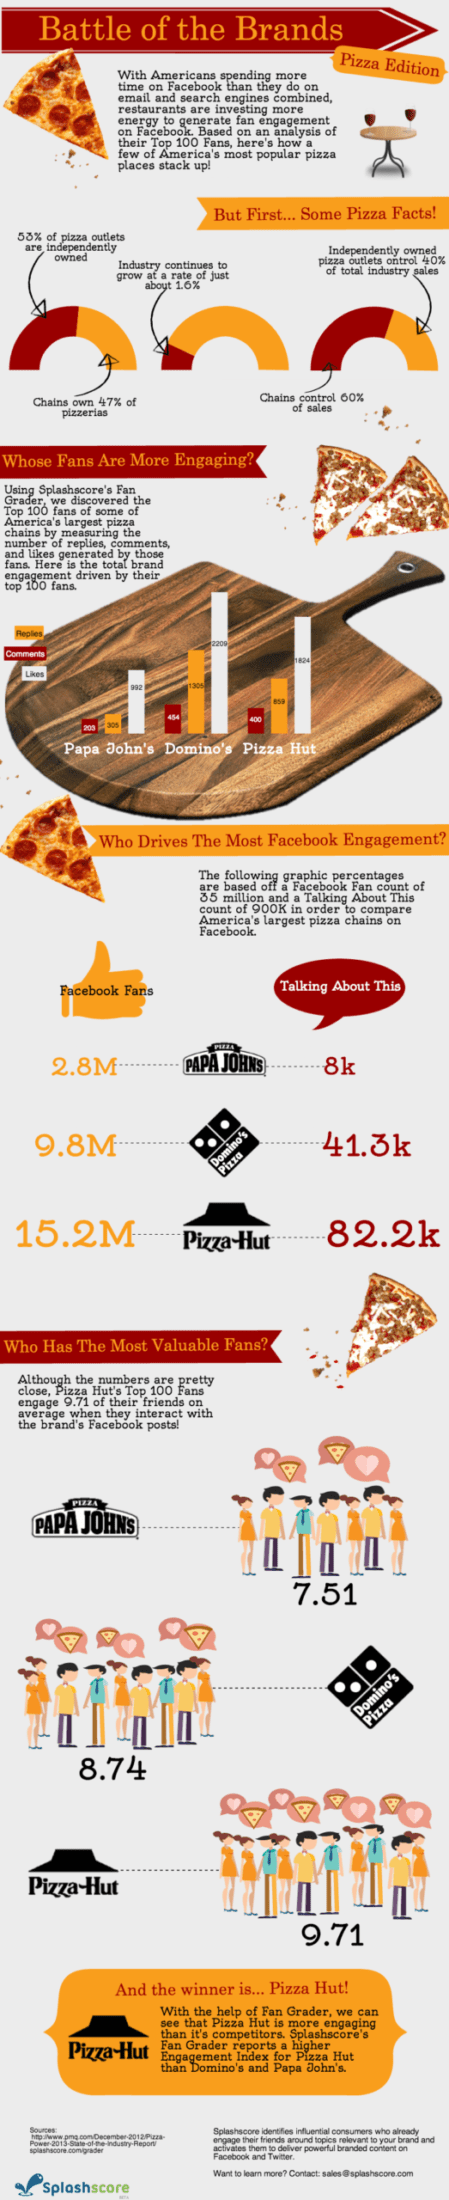 Infographic-Battle-of-the-Brands-Pizza-Edition-X